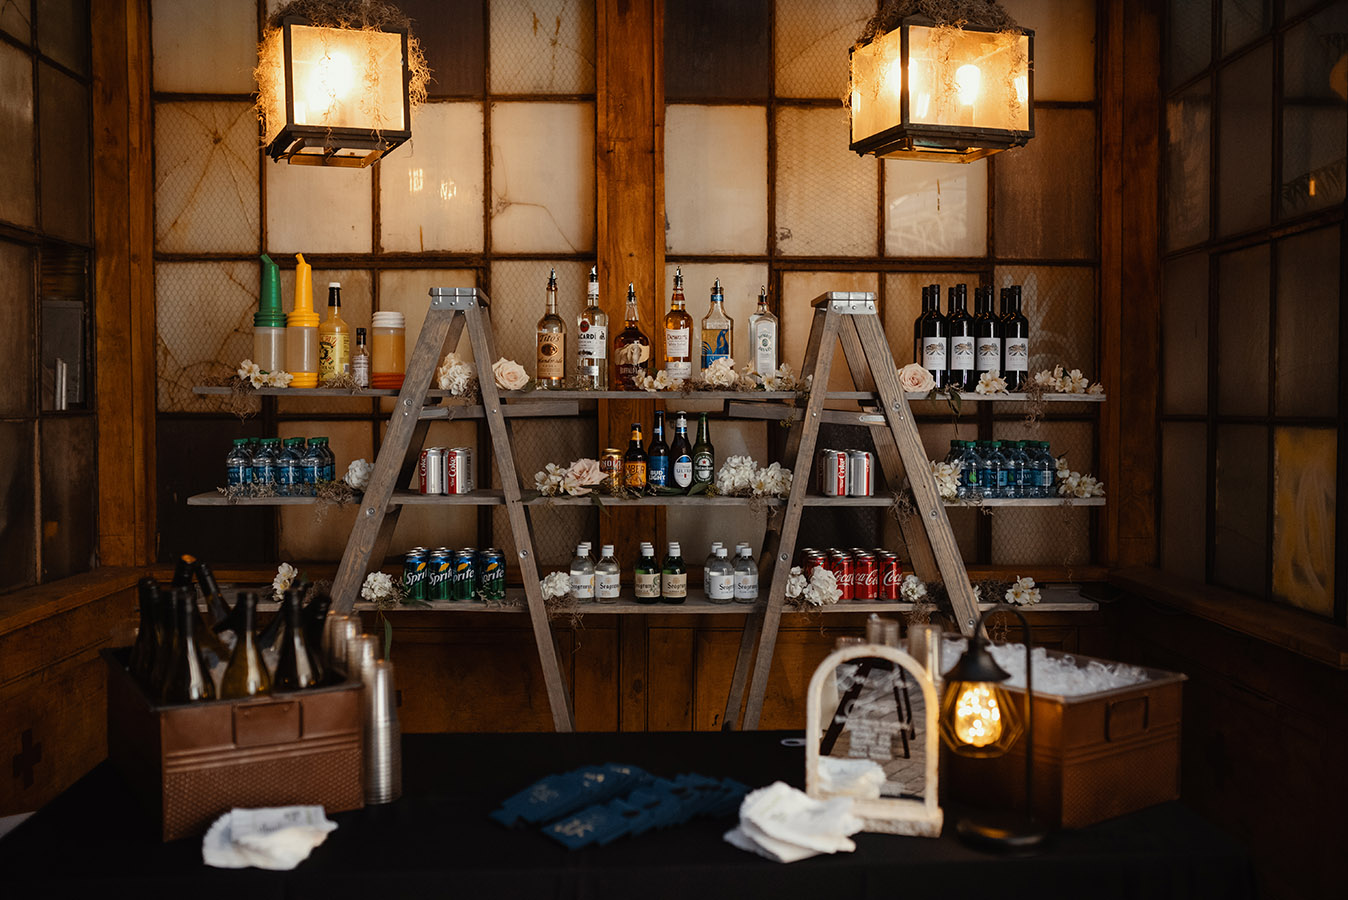 The ladder shelf bar back was custom created for Jeanne and Dan's wedding by True Value Rental. Abita and NOLA Blonde beers were displayed in a pirogue. Photo by Dark Roux